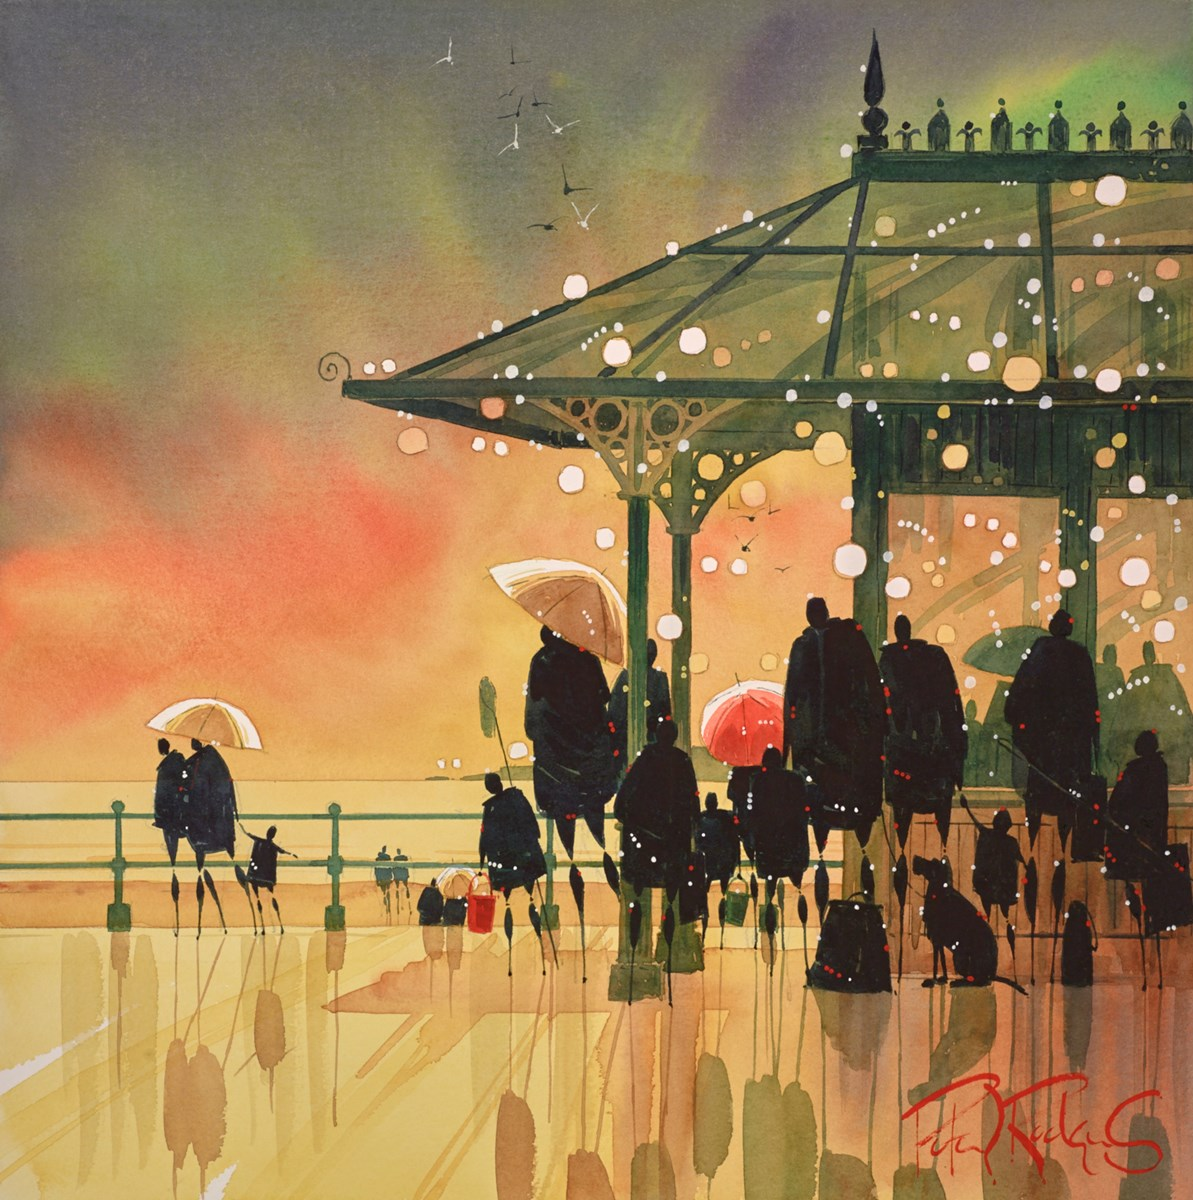 Promenade Shelter by peter j rodgers -  sized 16x16 inches. Available from Whitewall Galleries